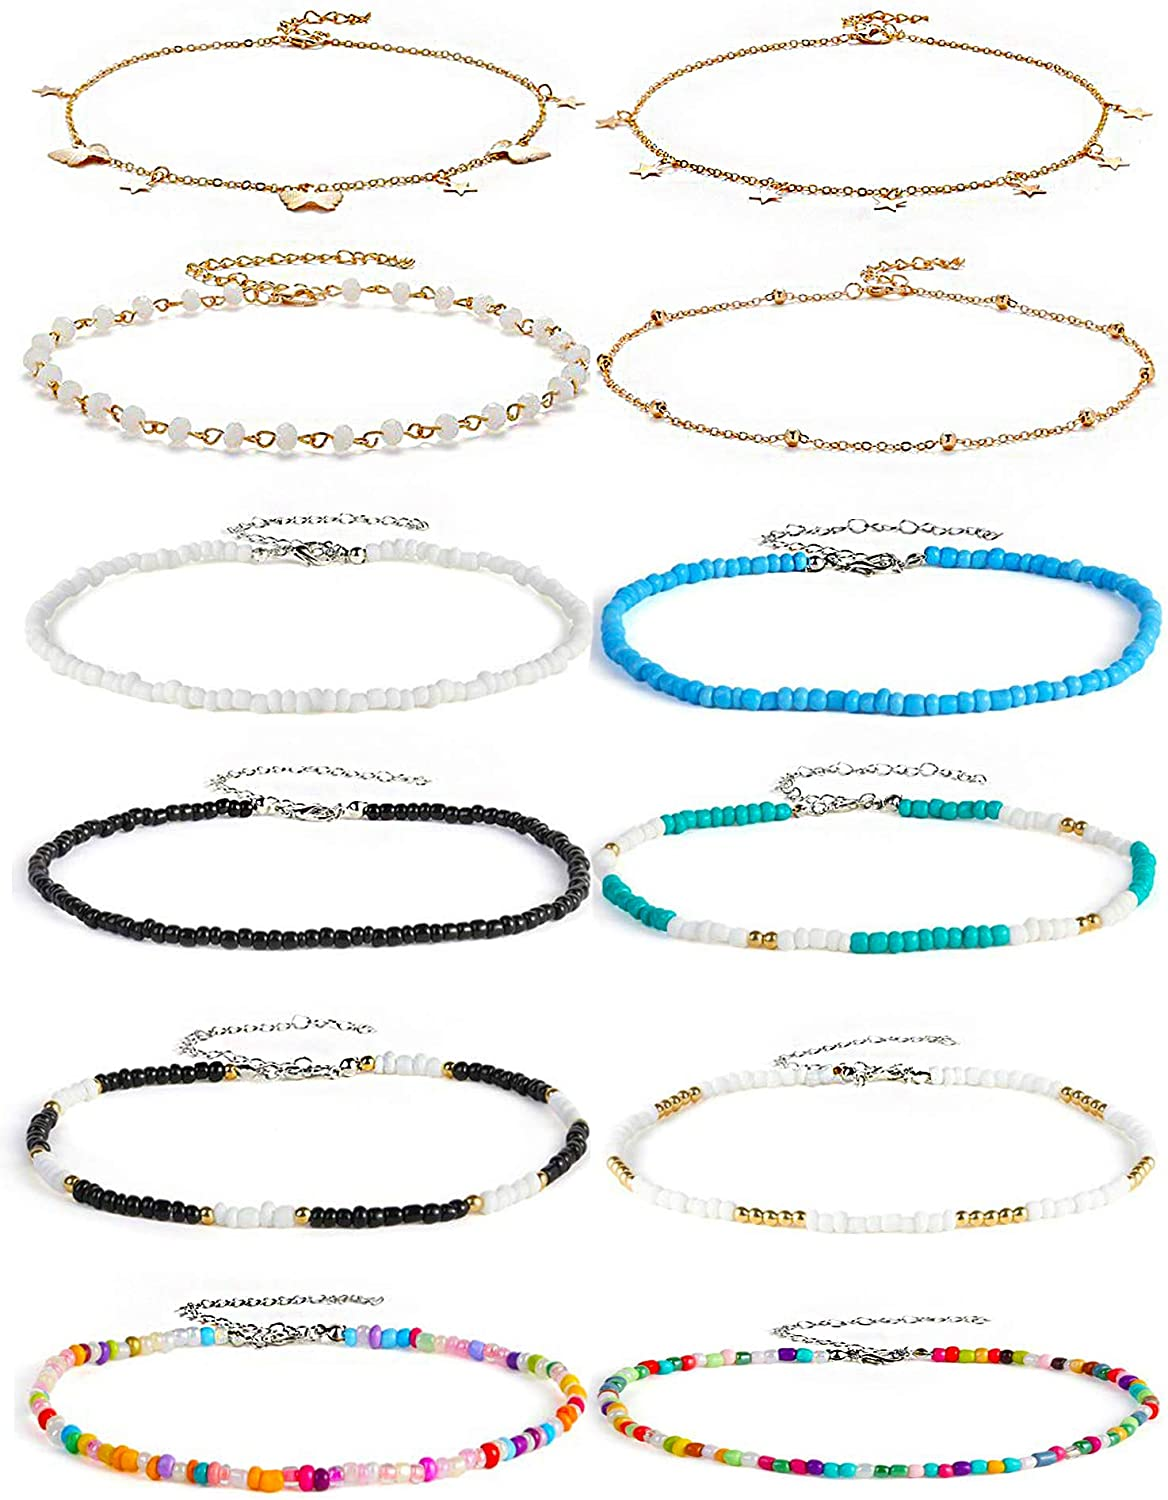 Beaded Choker Necklace for Women Chain Charm Choker Necklace Set Handmade Seed Bead Choker Summer Beach Jewelry for Women 12 Pcs